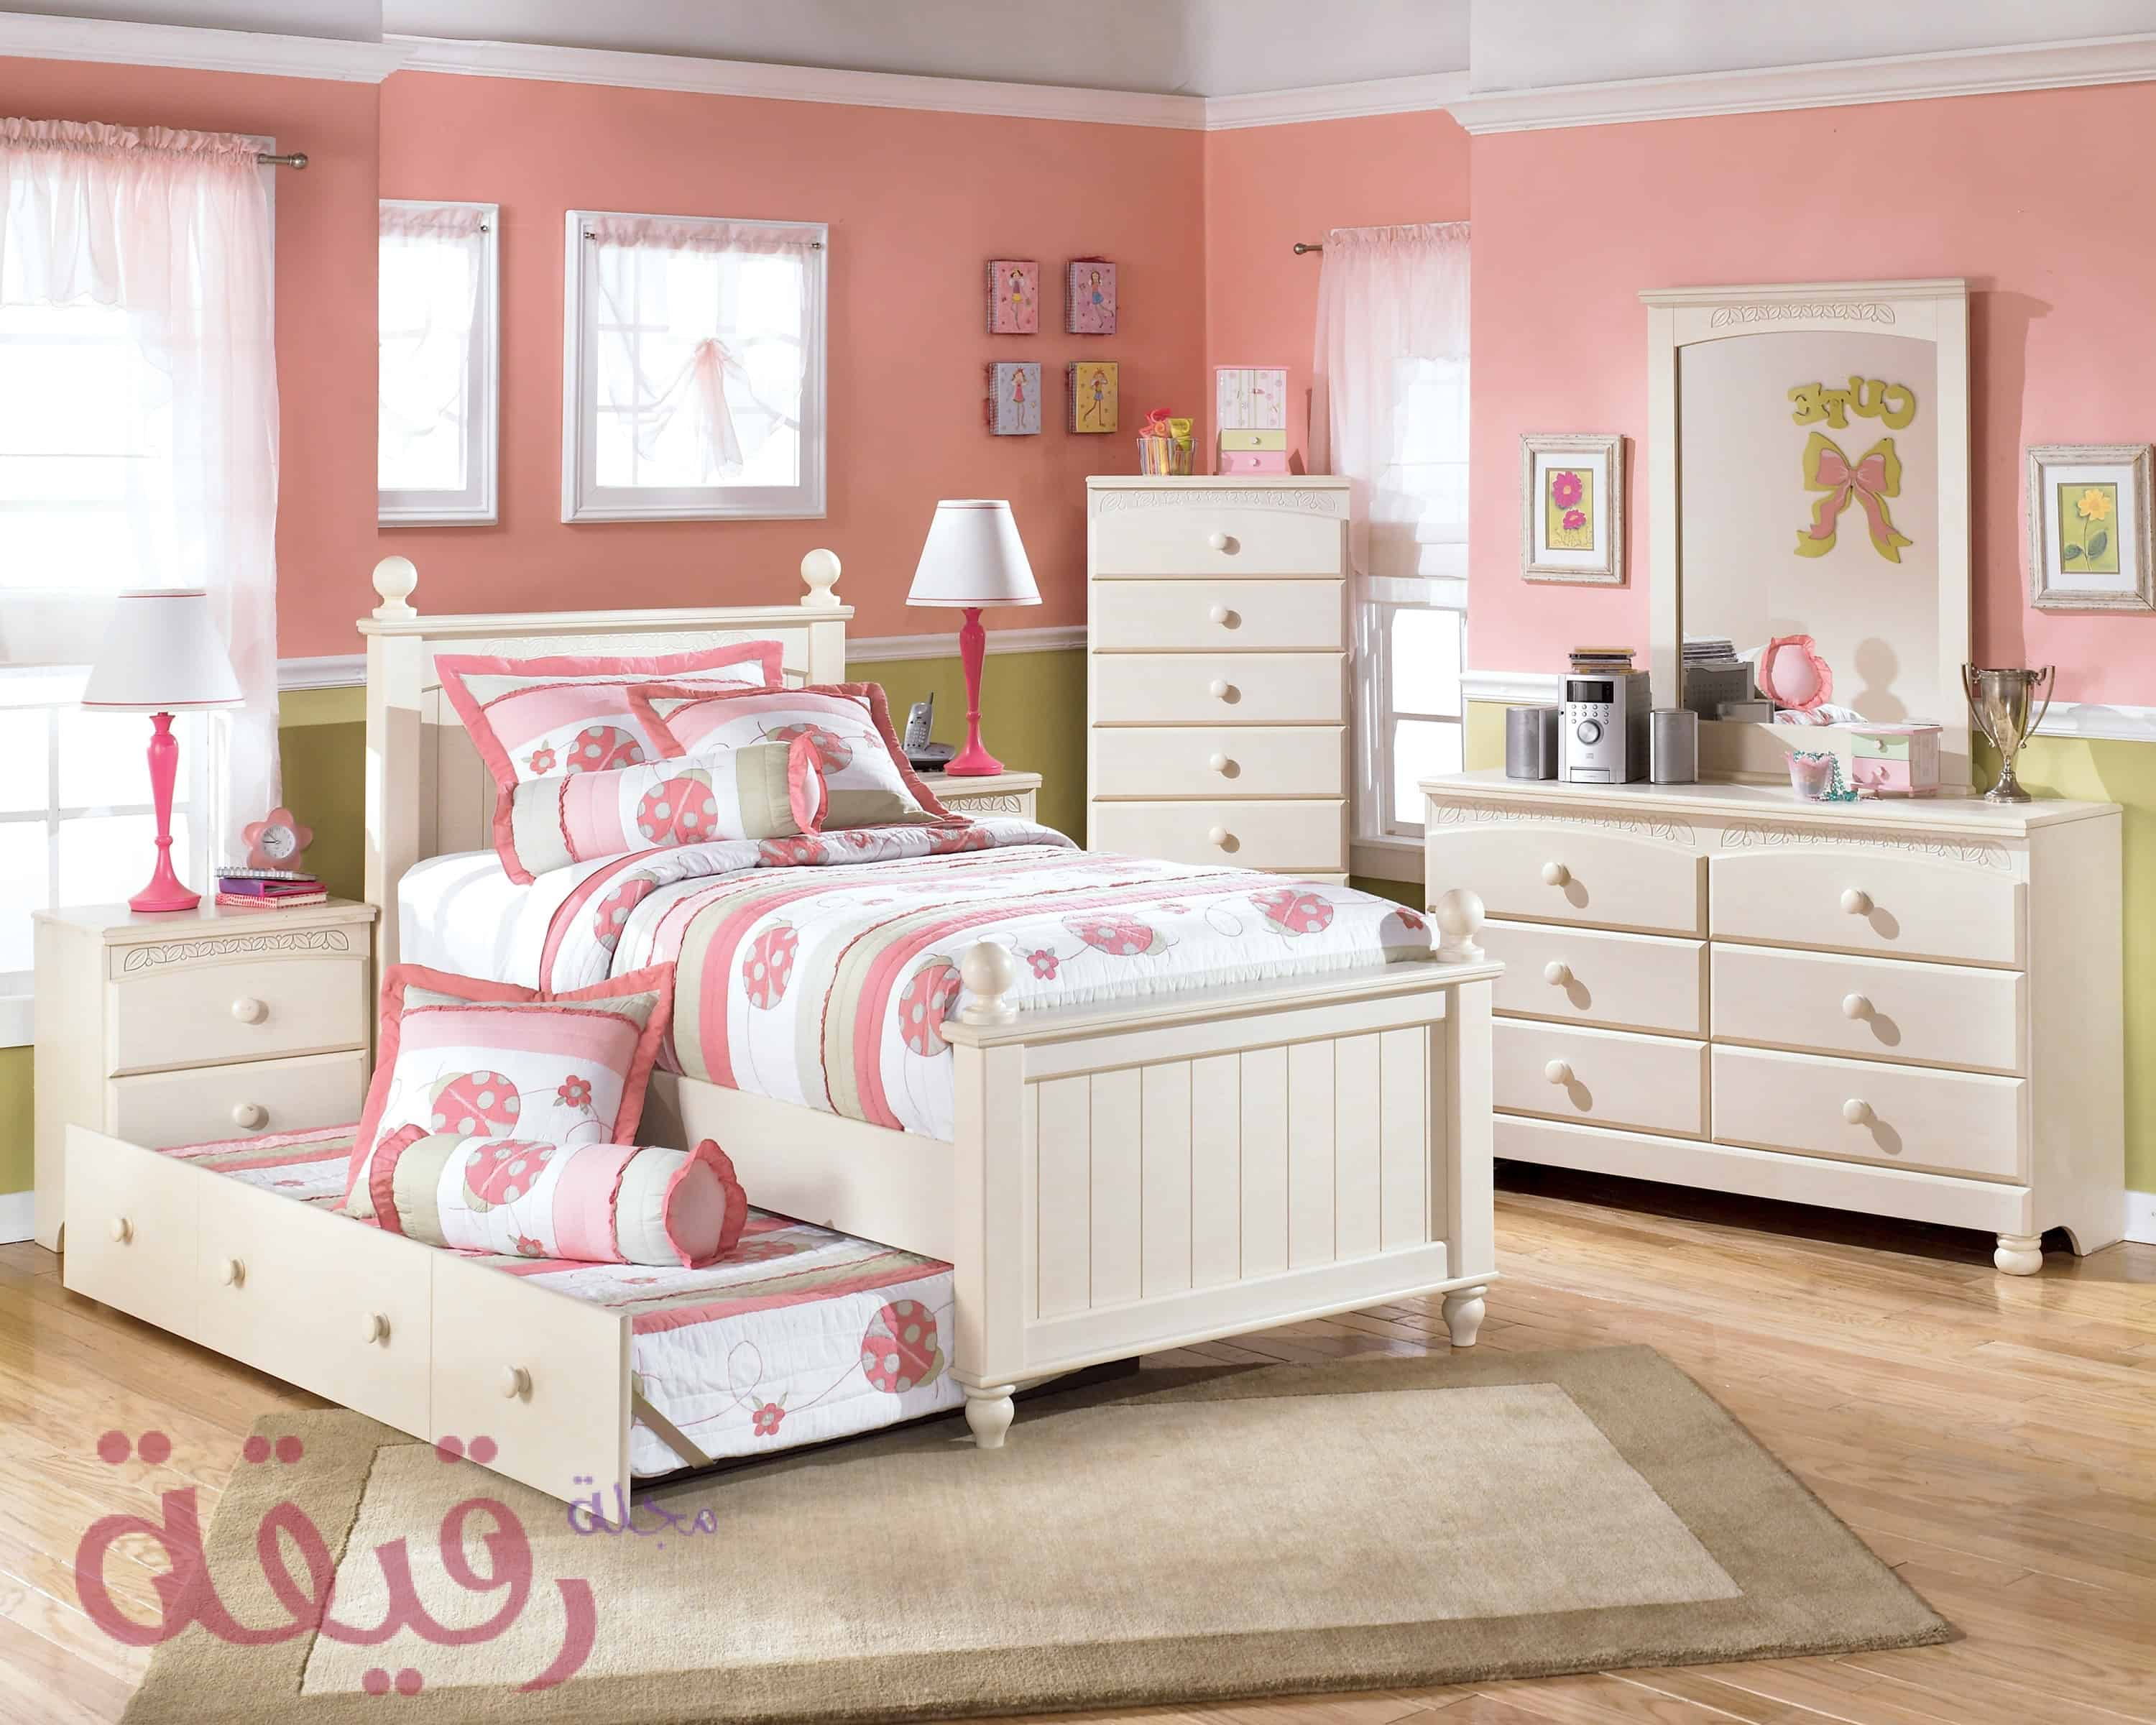 Bedroom Decorating Ideas In Pink